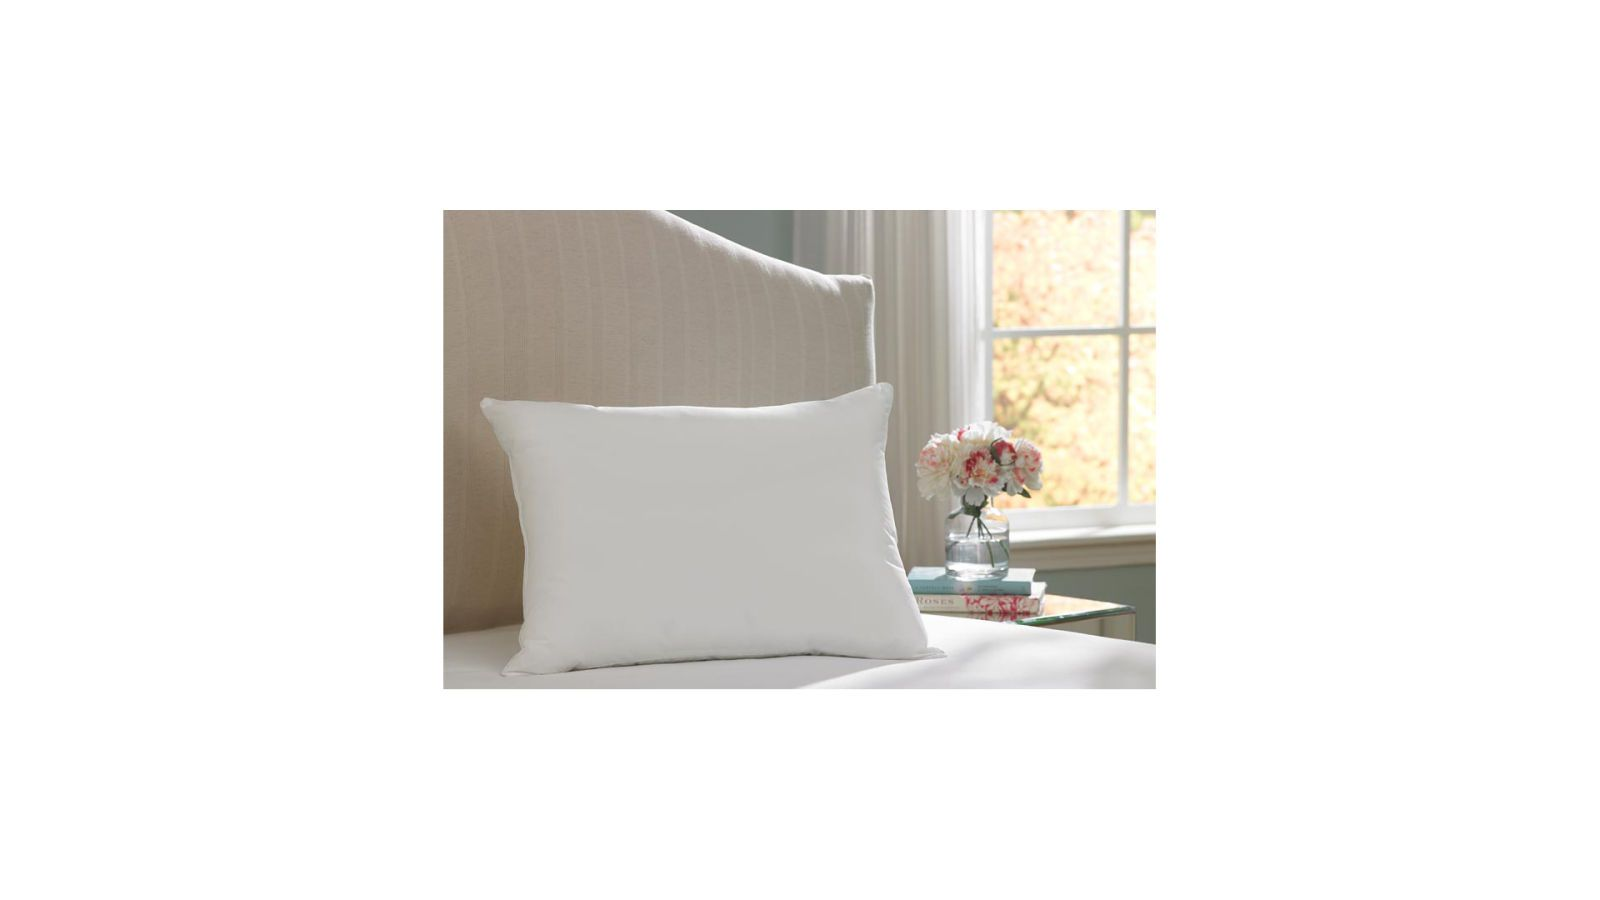 aller ease washable allergy protection pillow